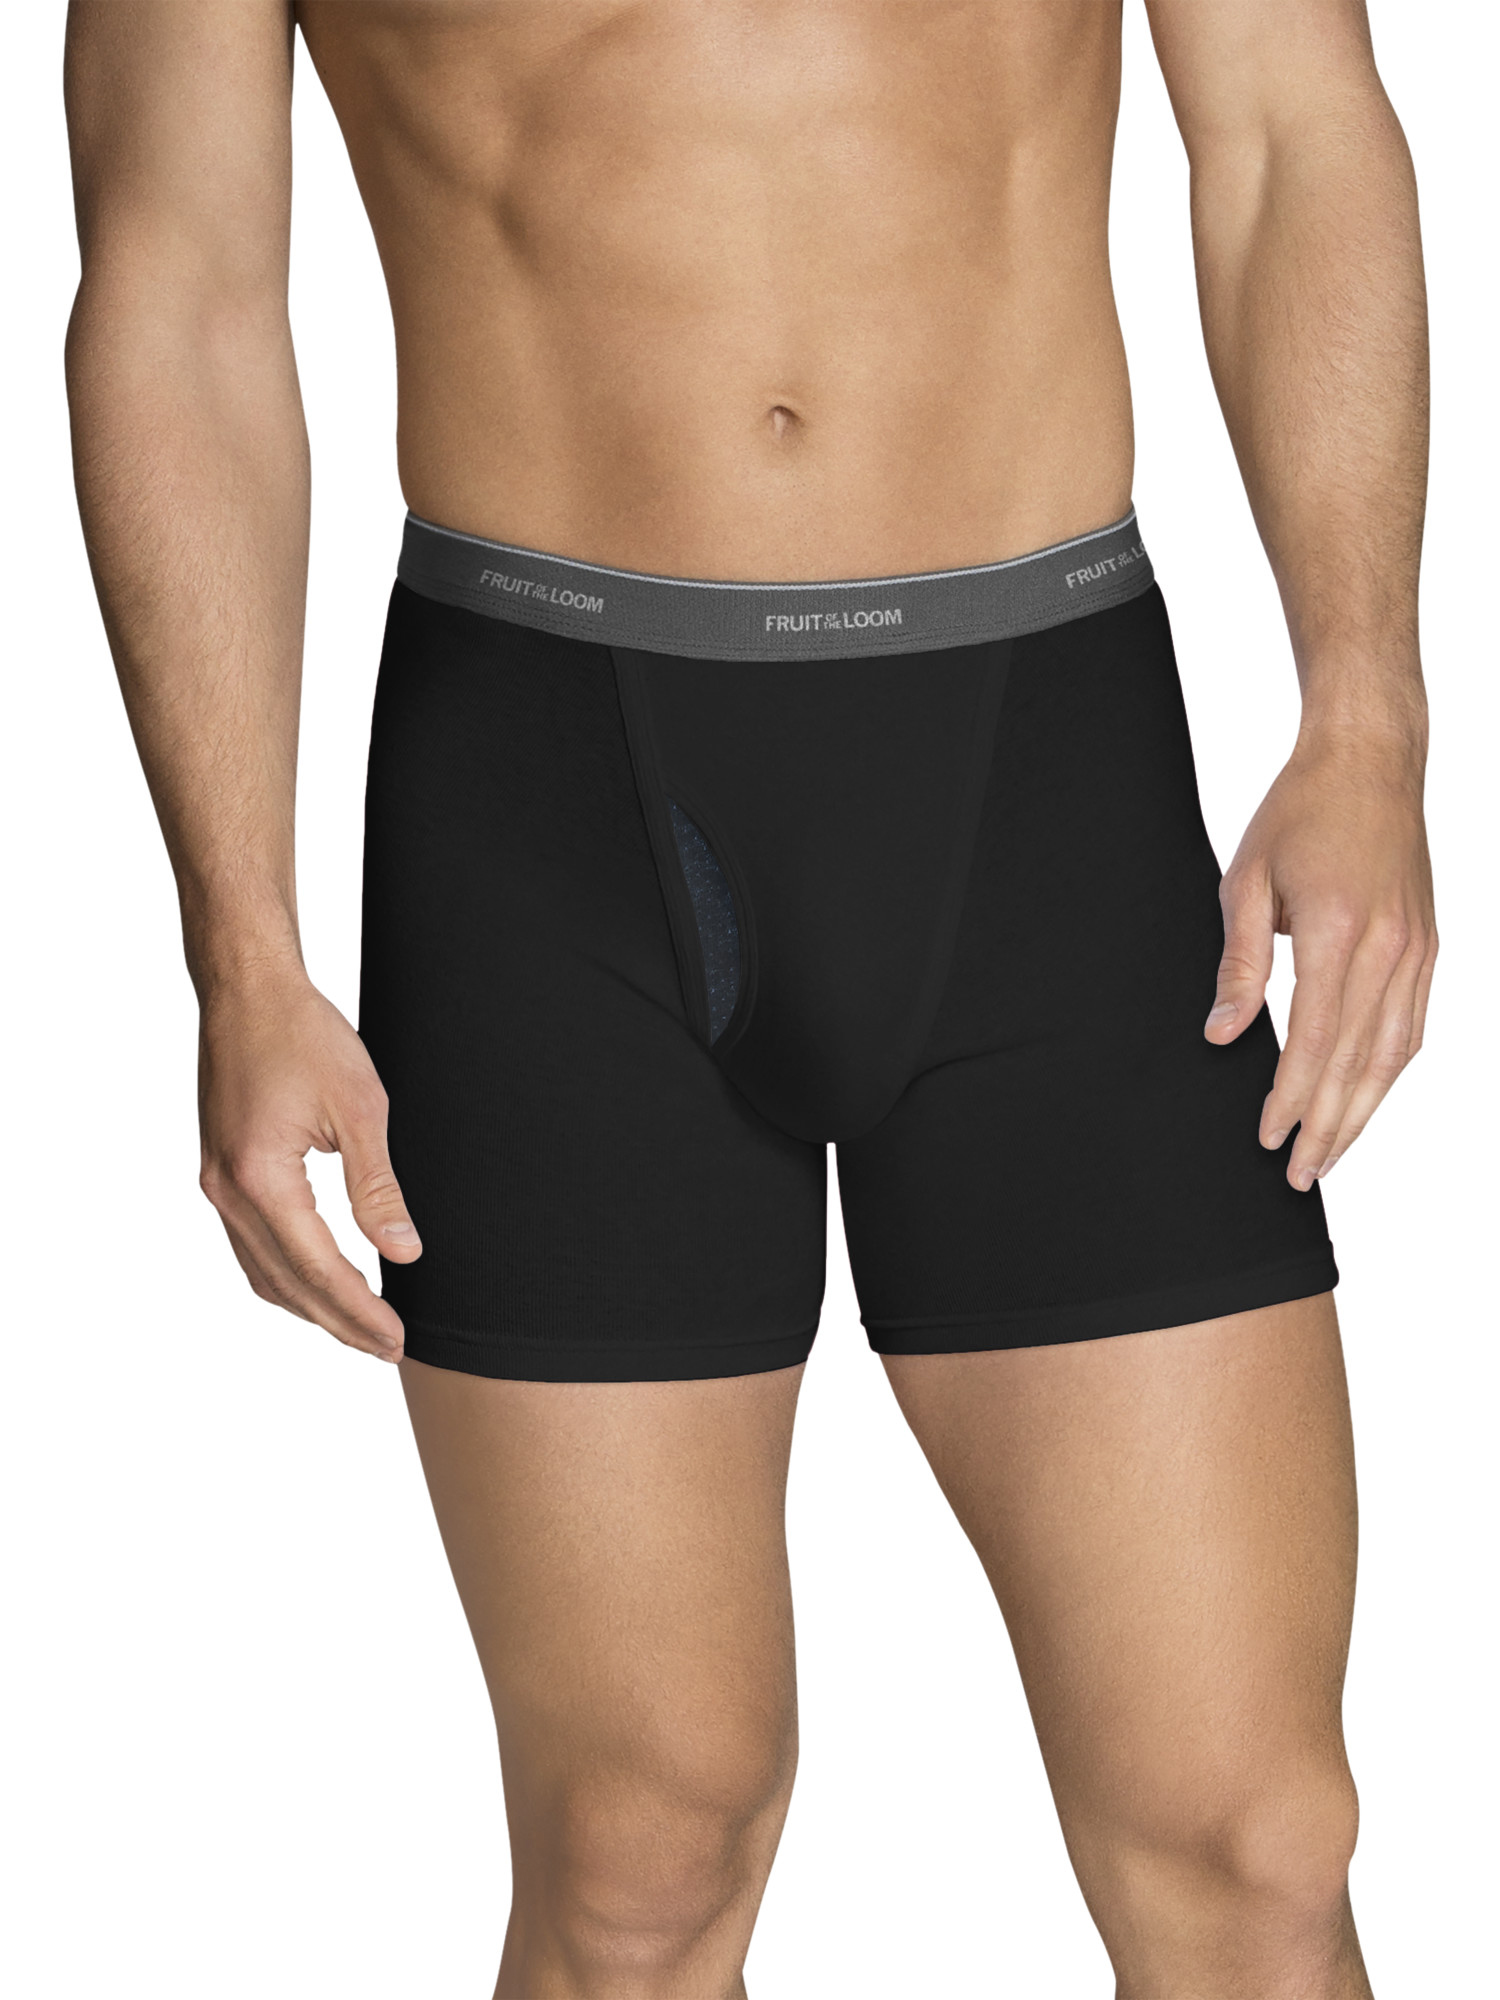 Big Men's CoolZone Fly Dual Defense Short Leg Boxer Briefs, Extended Sizes, 4 Pack